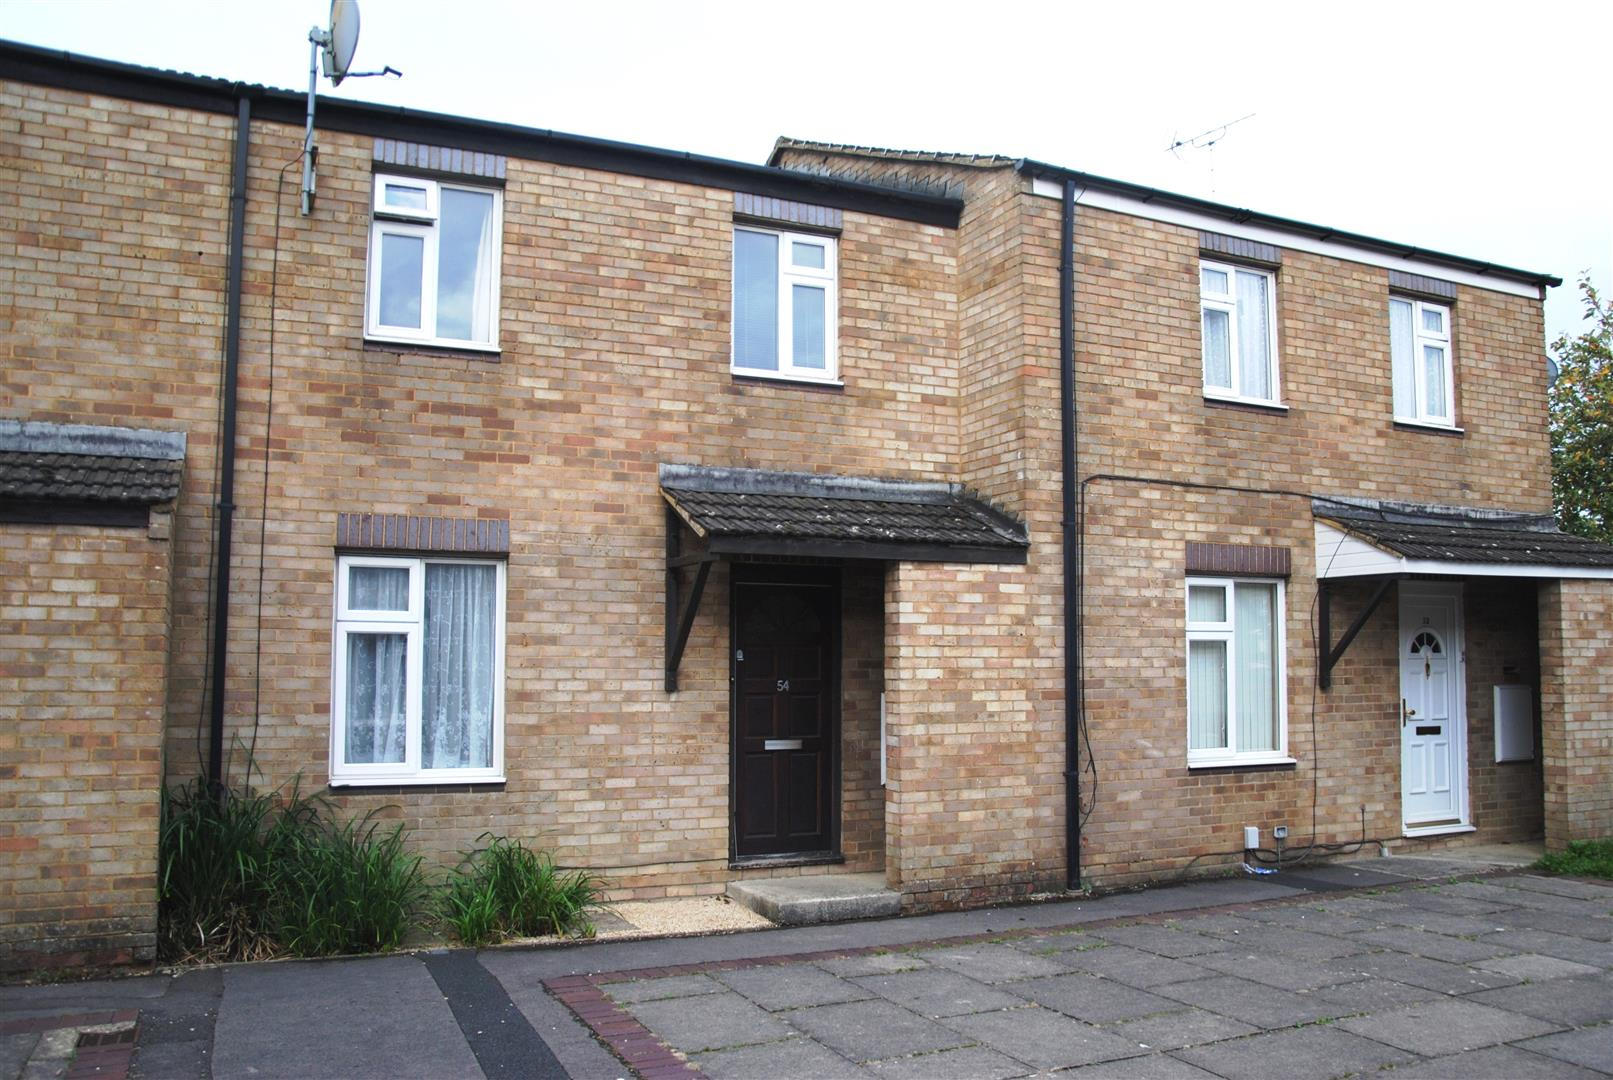 3 Bedrooms Terraced House for sale in Crawford Close, Freshbrook, Swindon